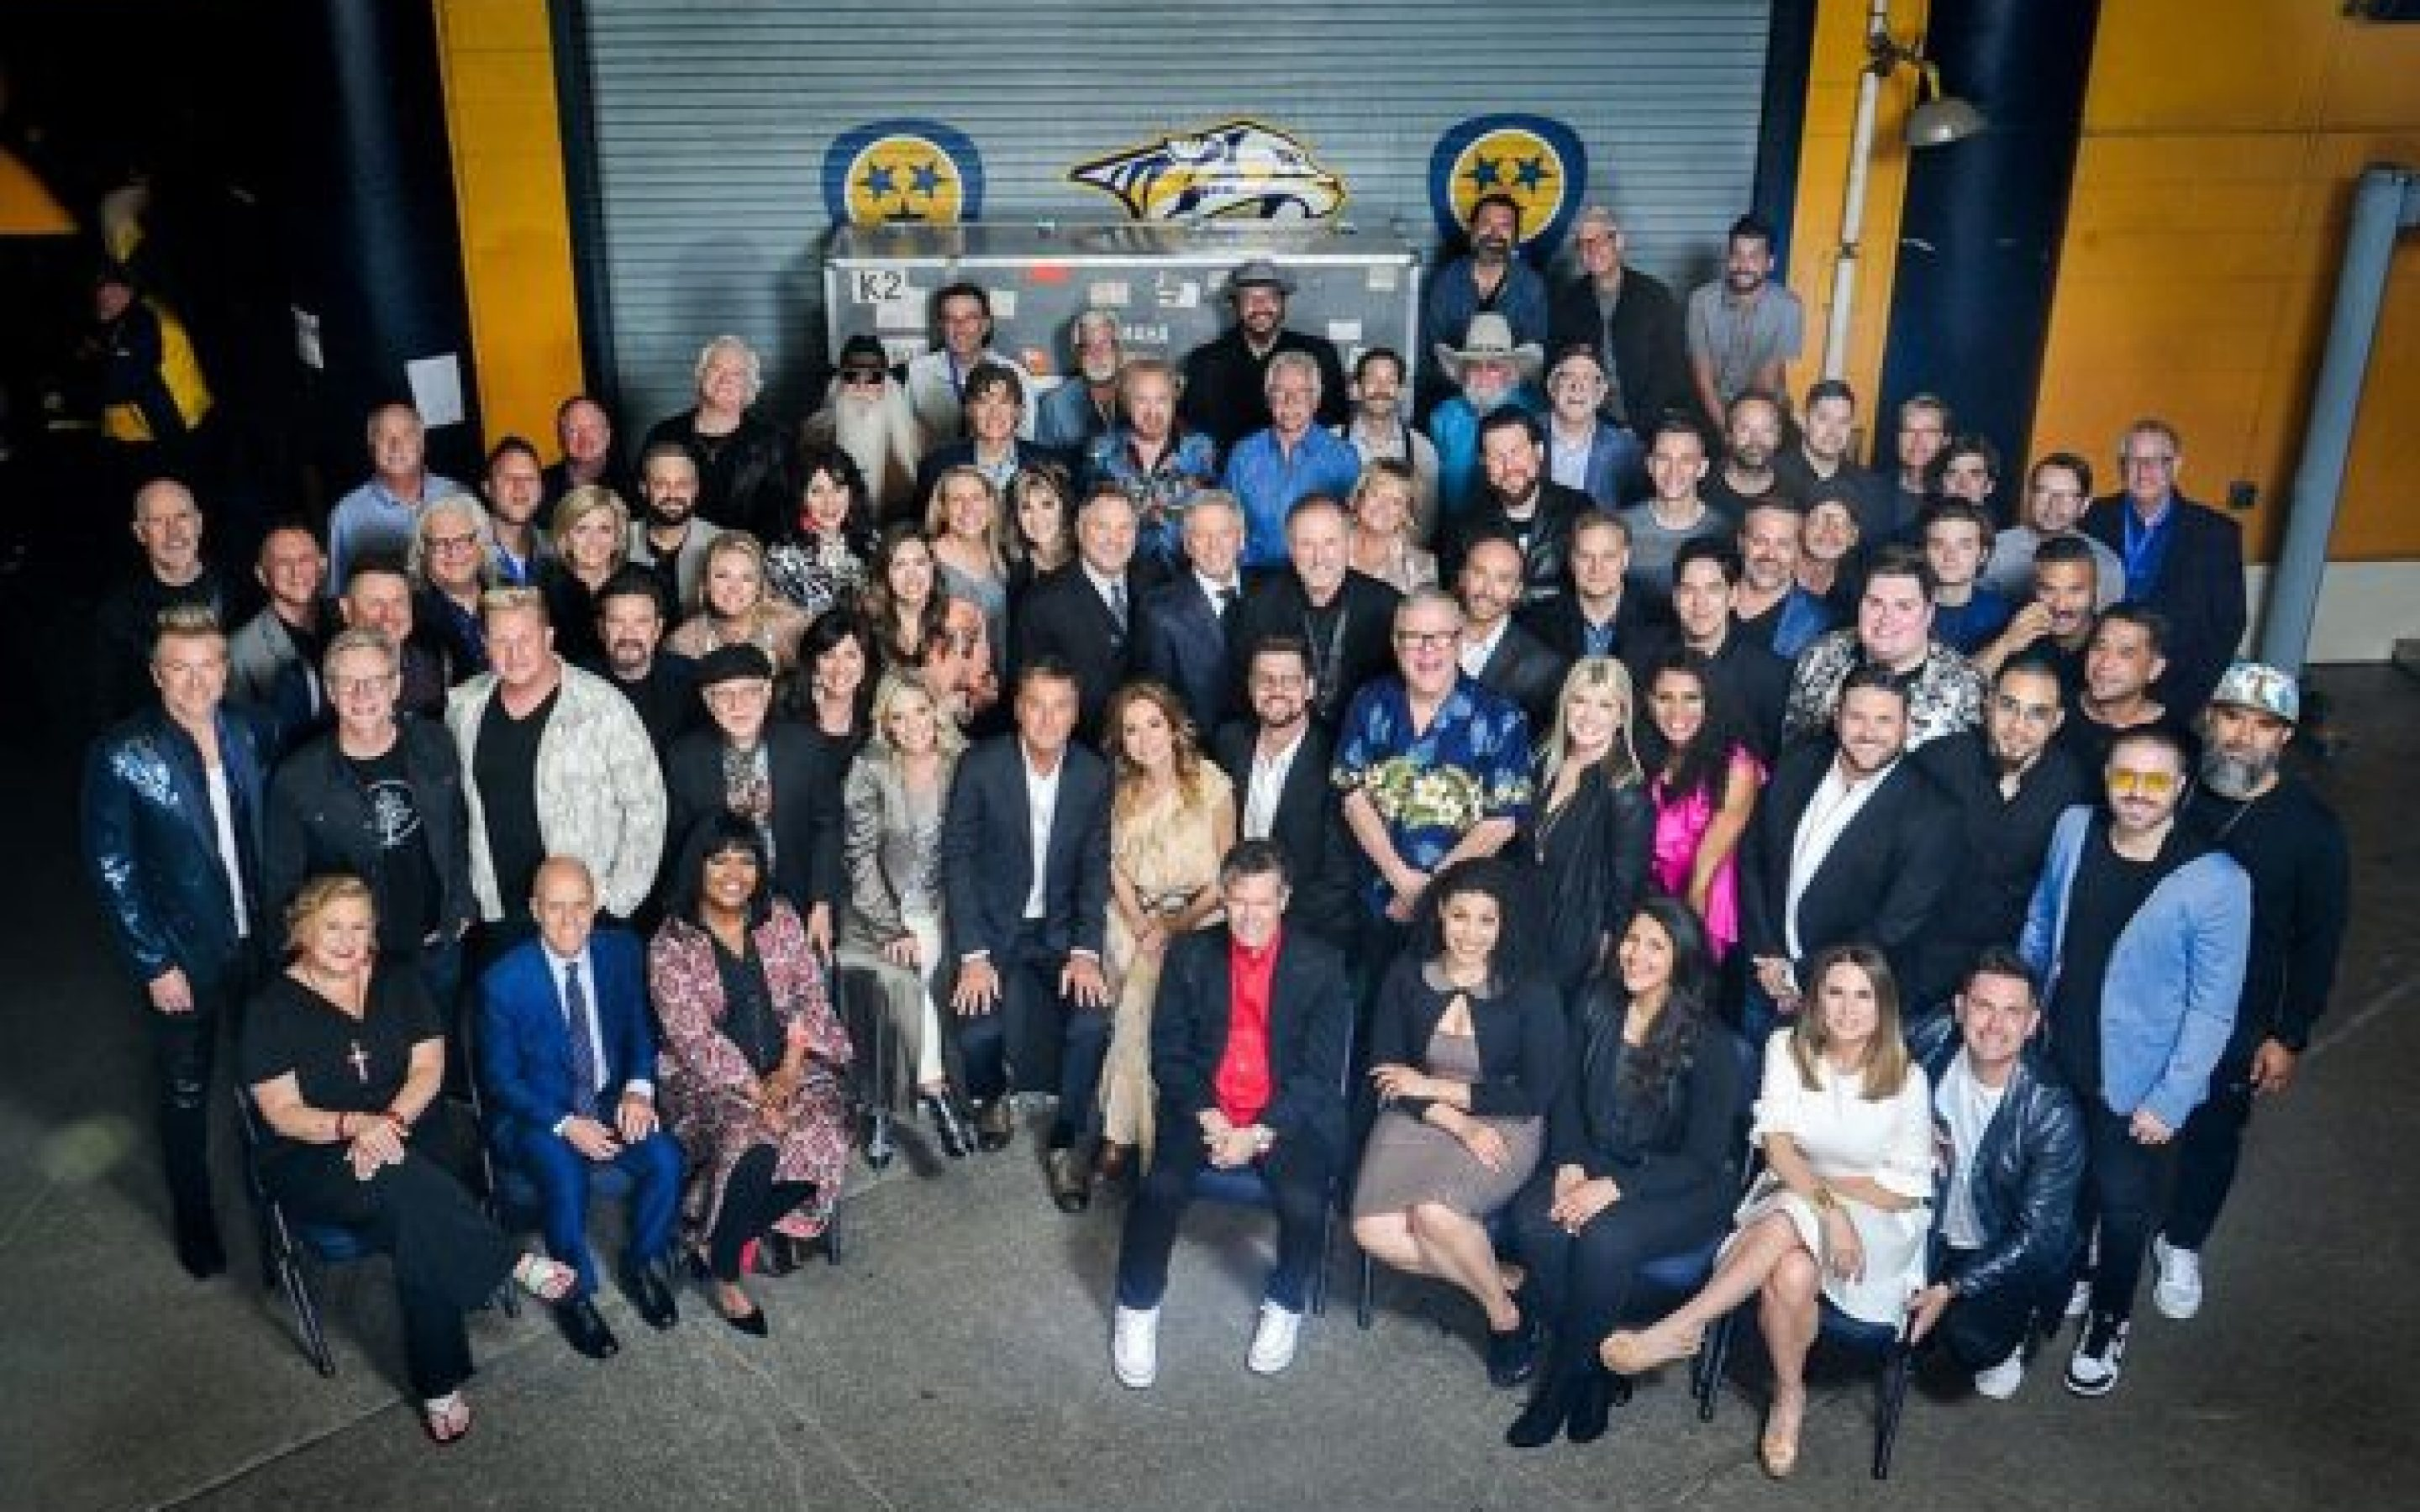 Over 50 Artists Join Forces To Honor Michael W. Smith At Bridgestone Arena